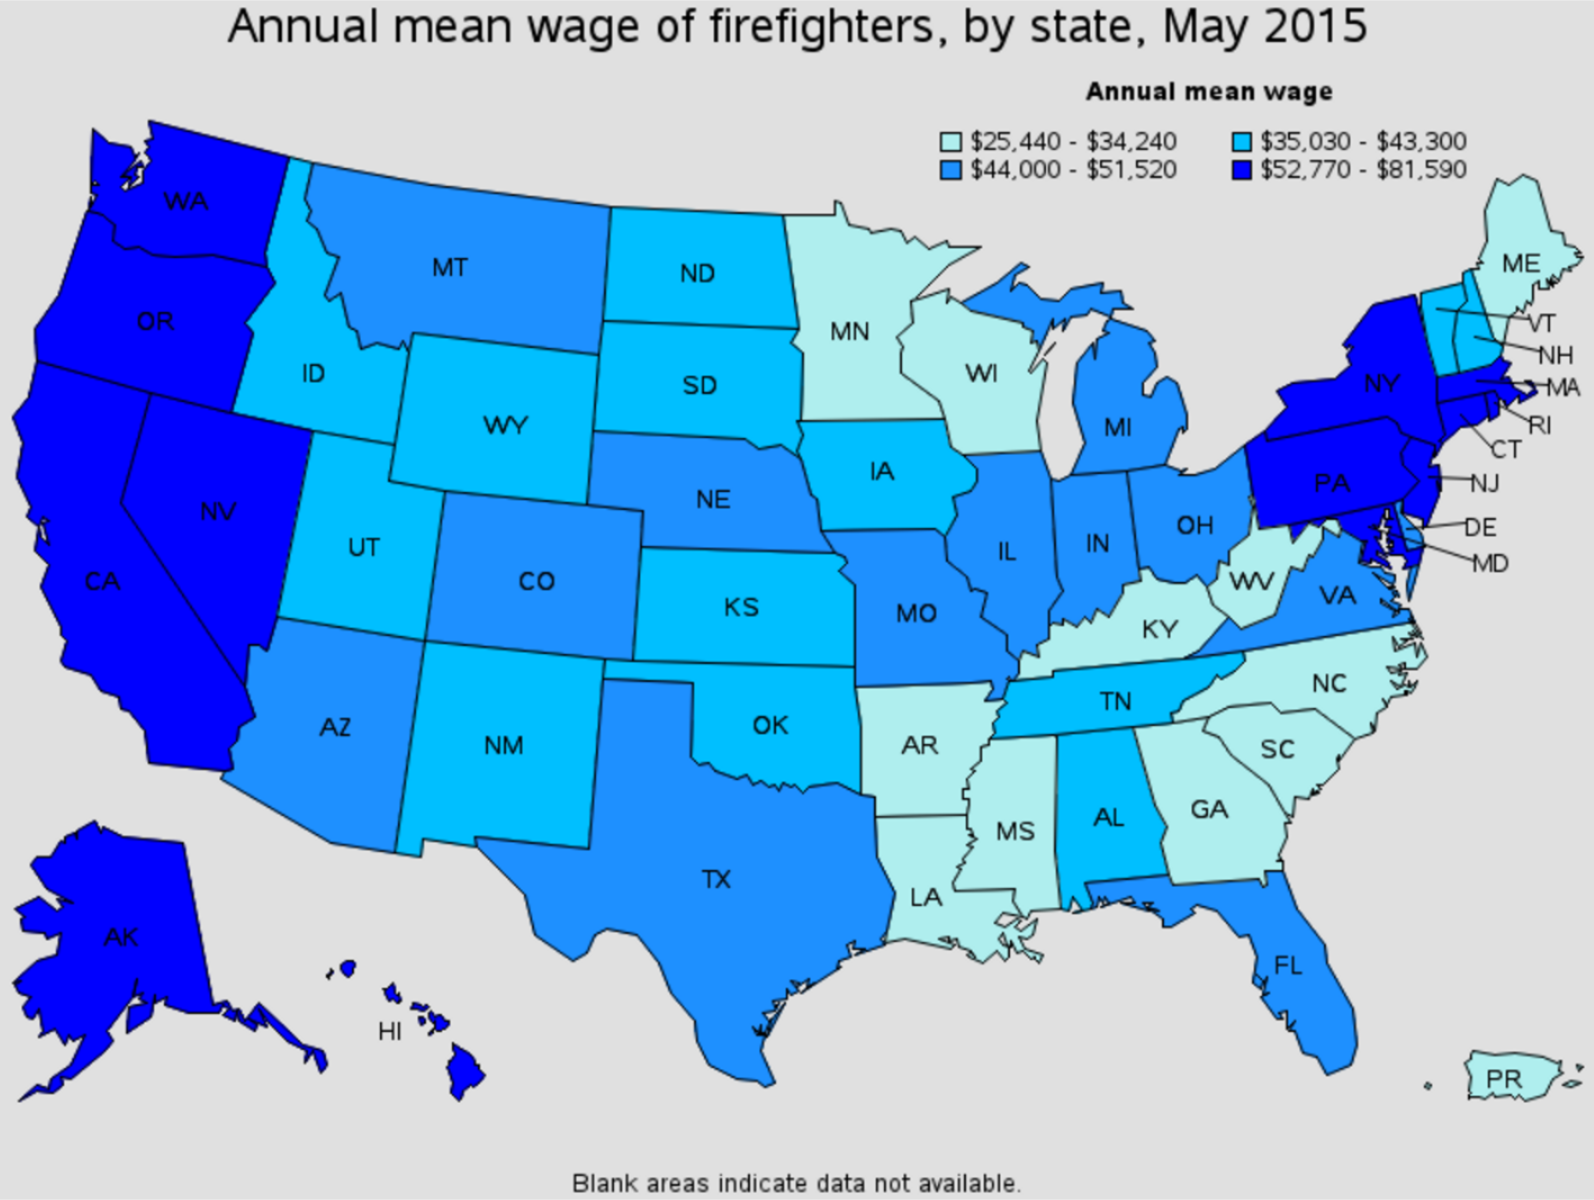 firefighter average salary by state Zuni New Mexico